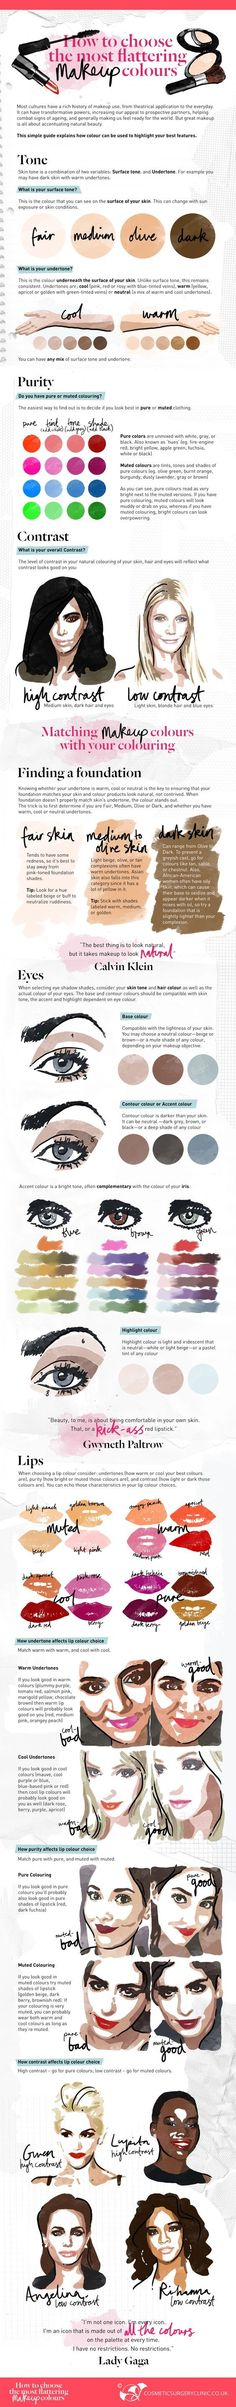 How To Choose the Most Flattering Makeup Colors #infographic ~ Visualistan: